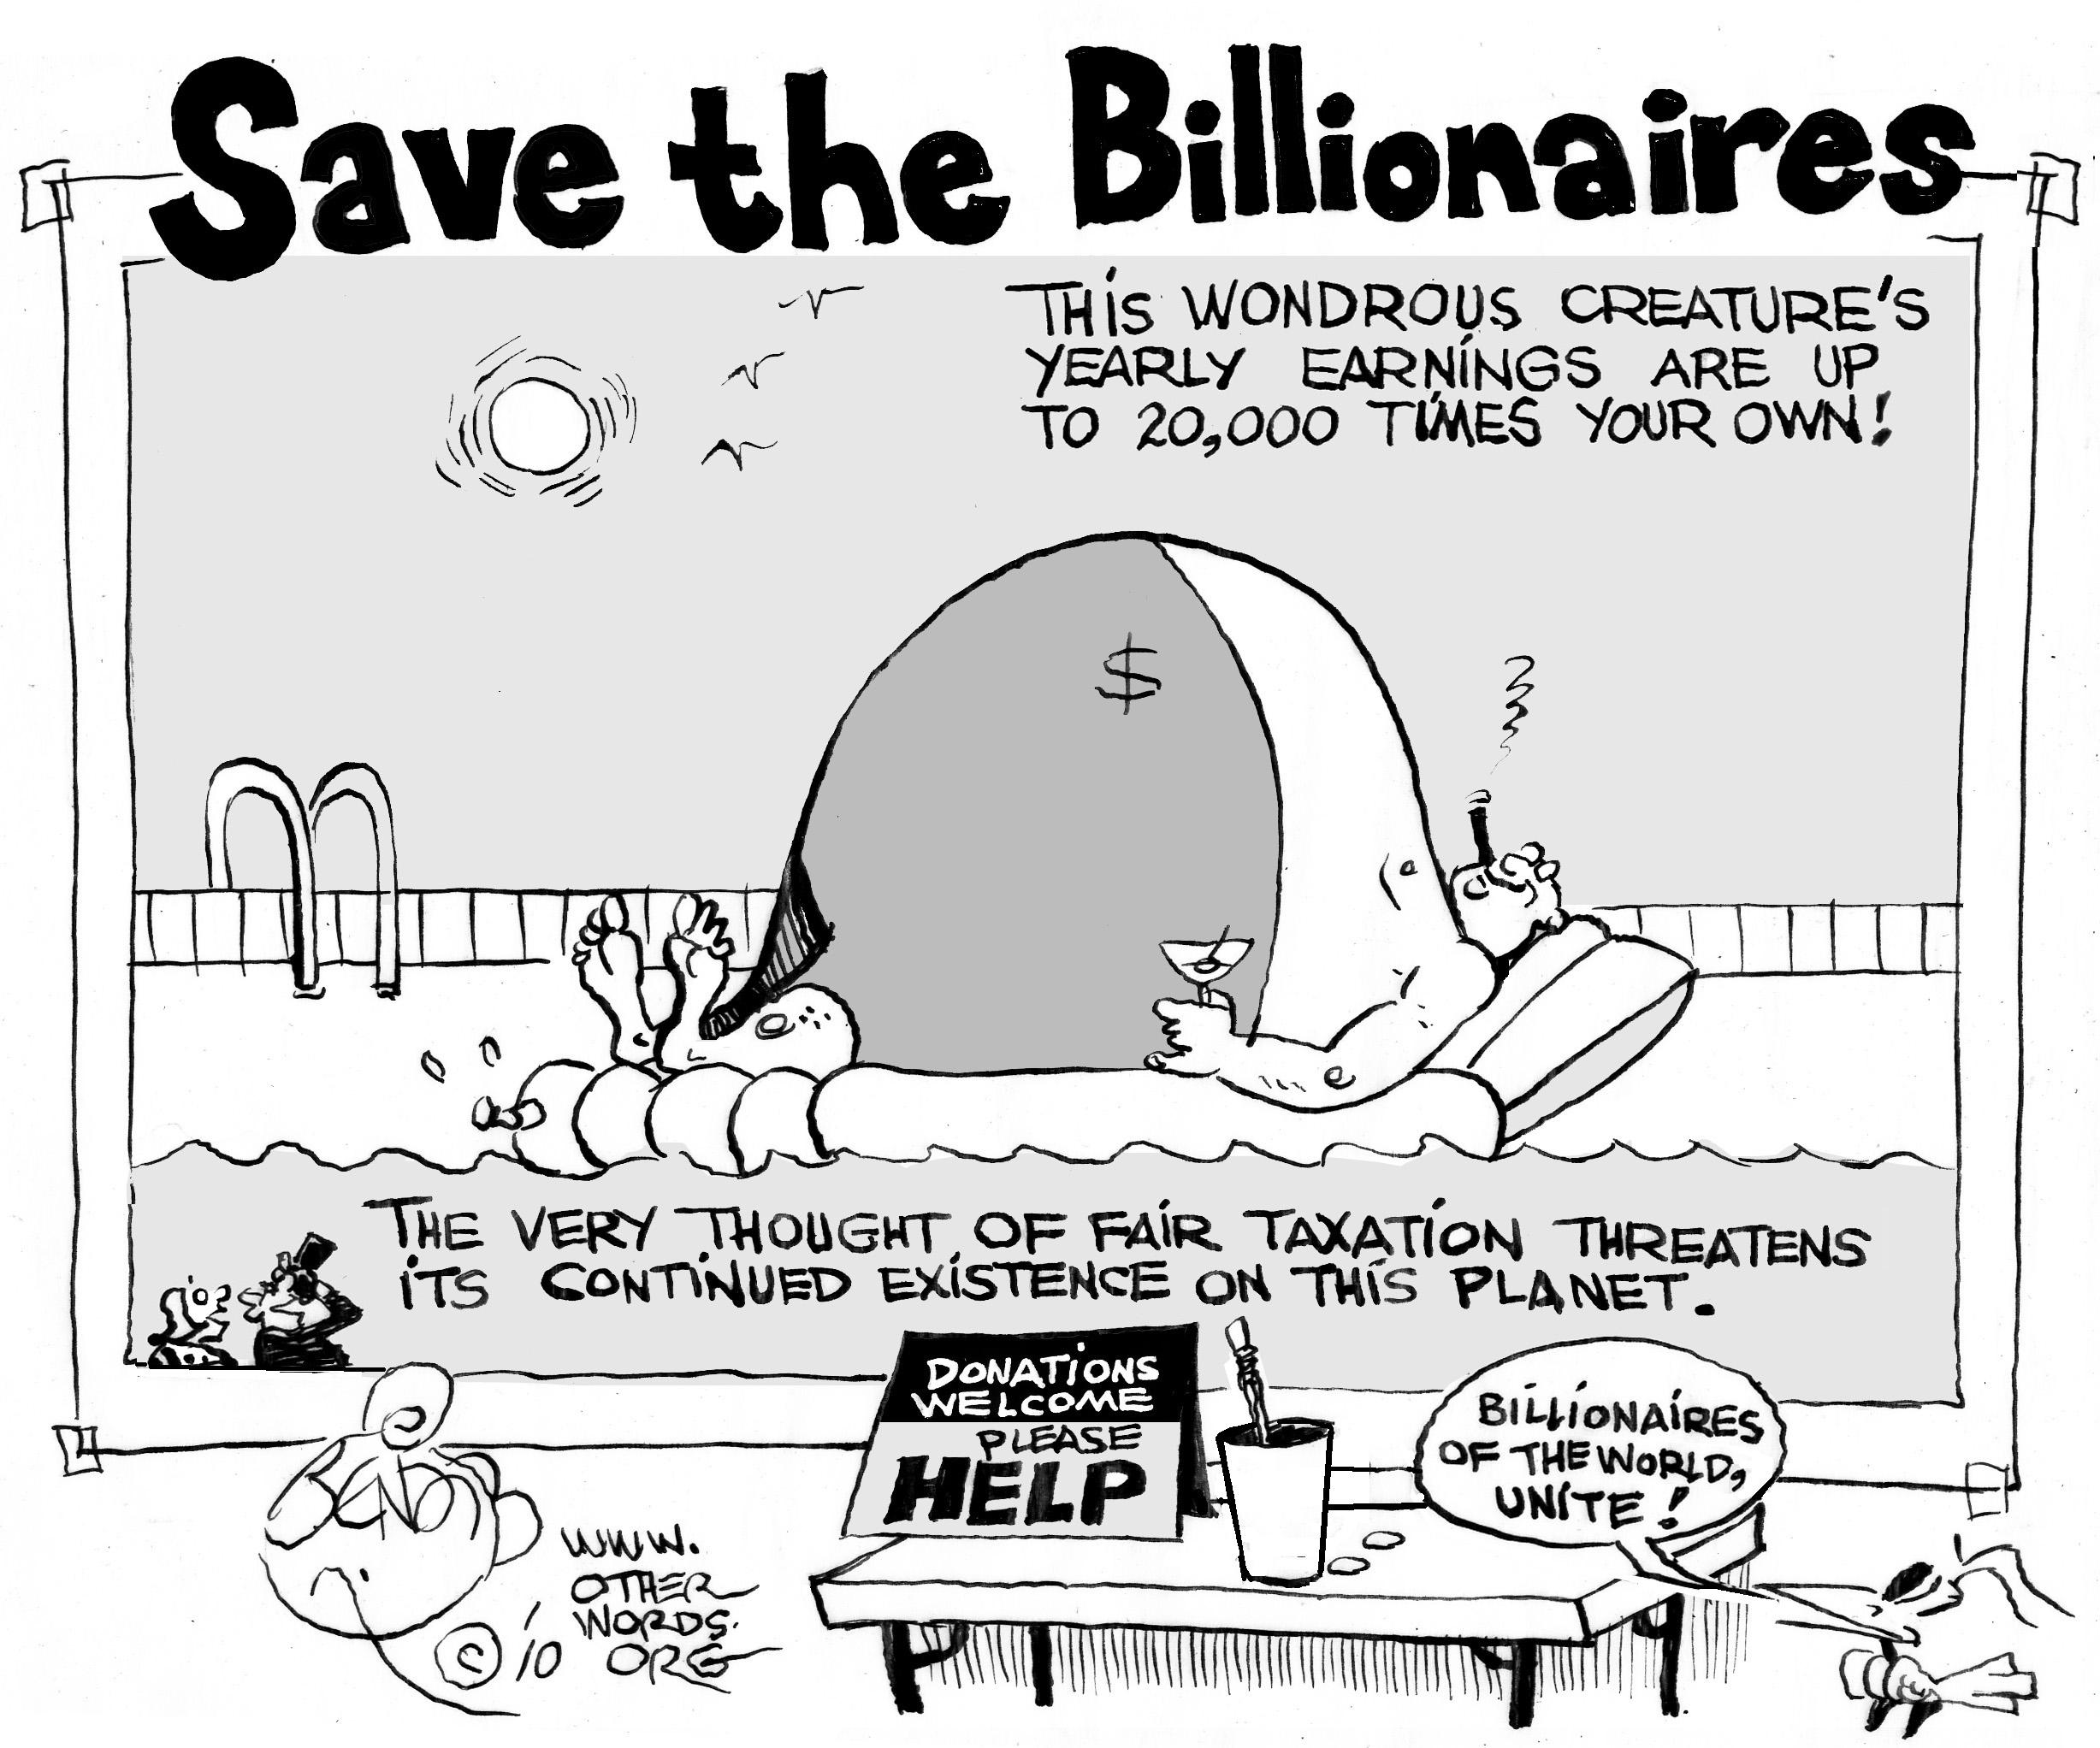 Save the Billionaires